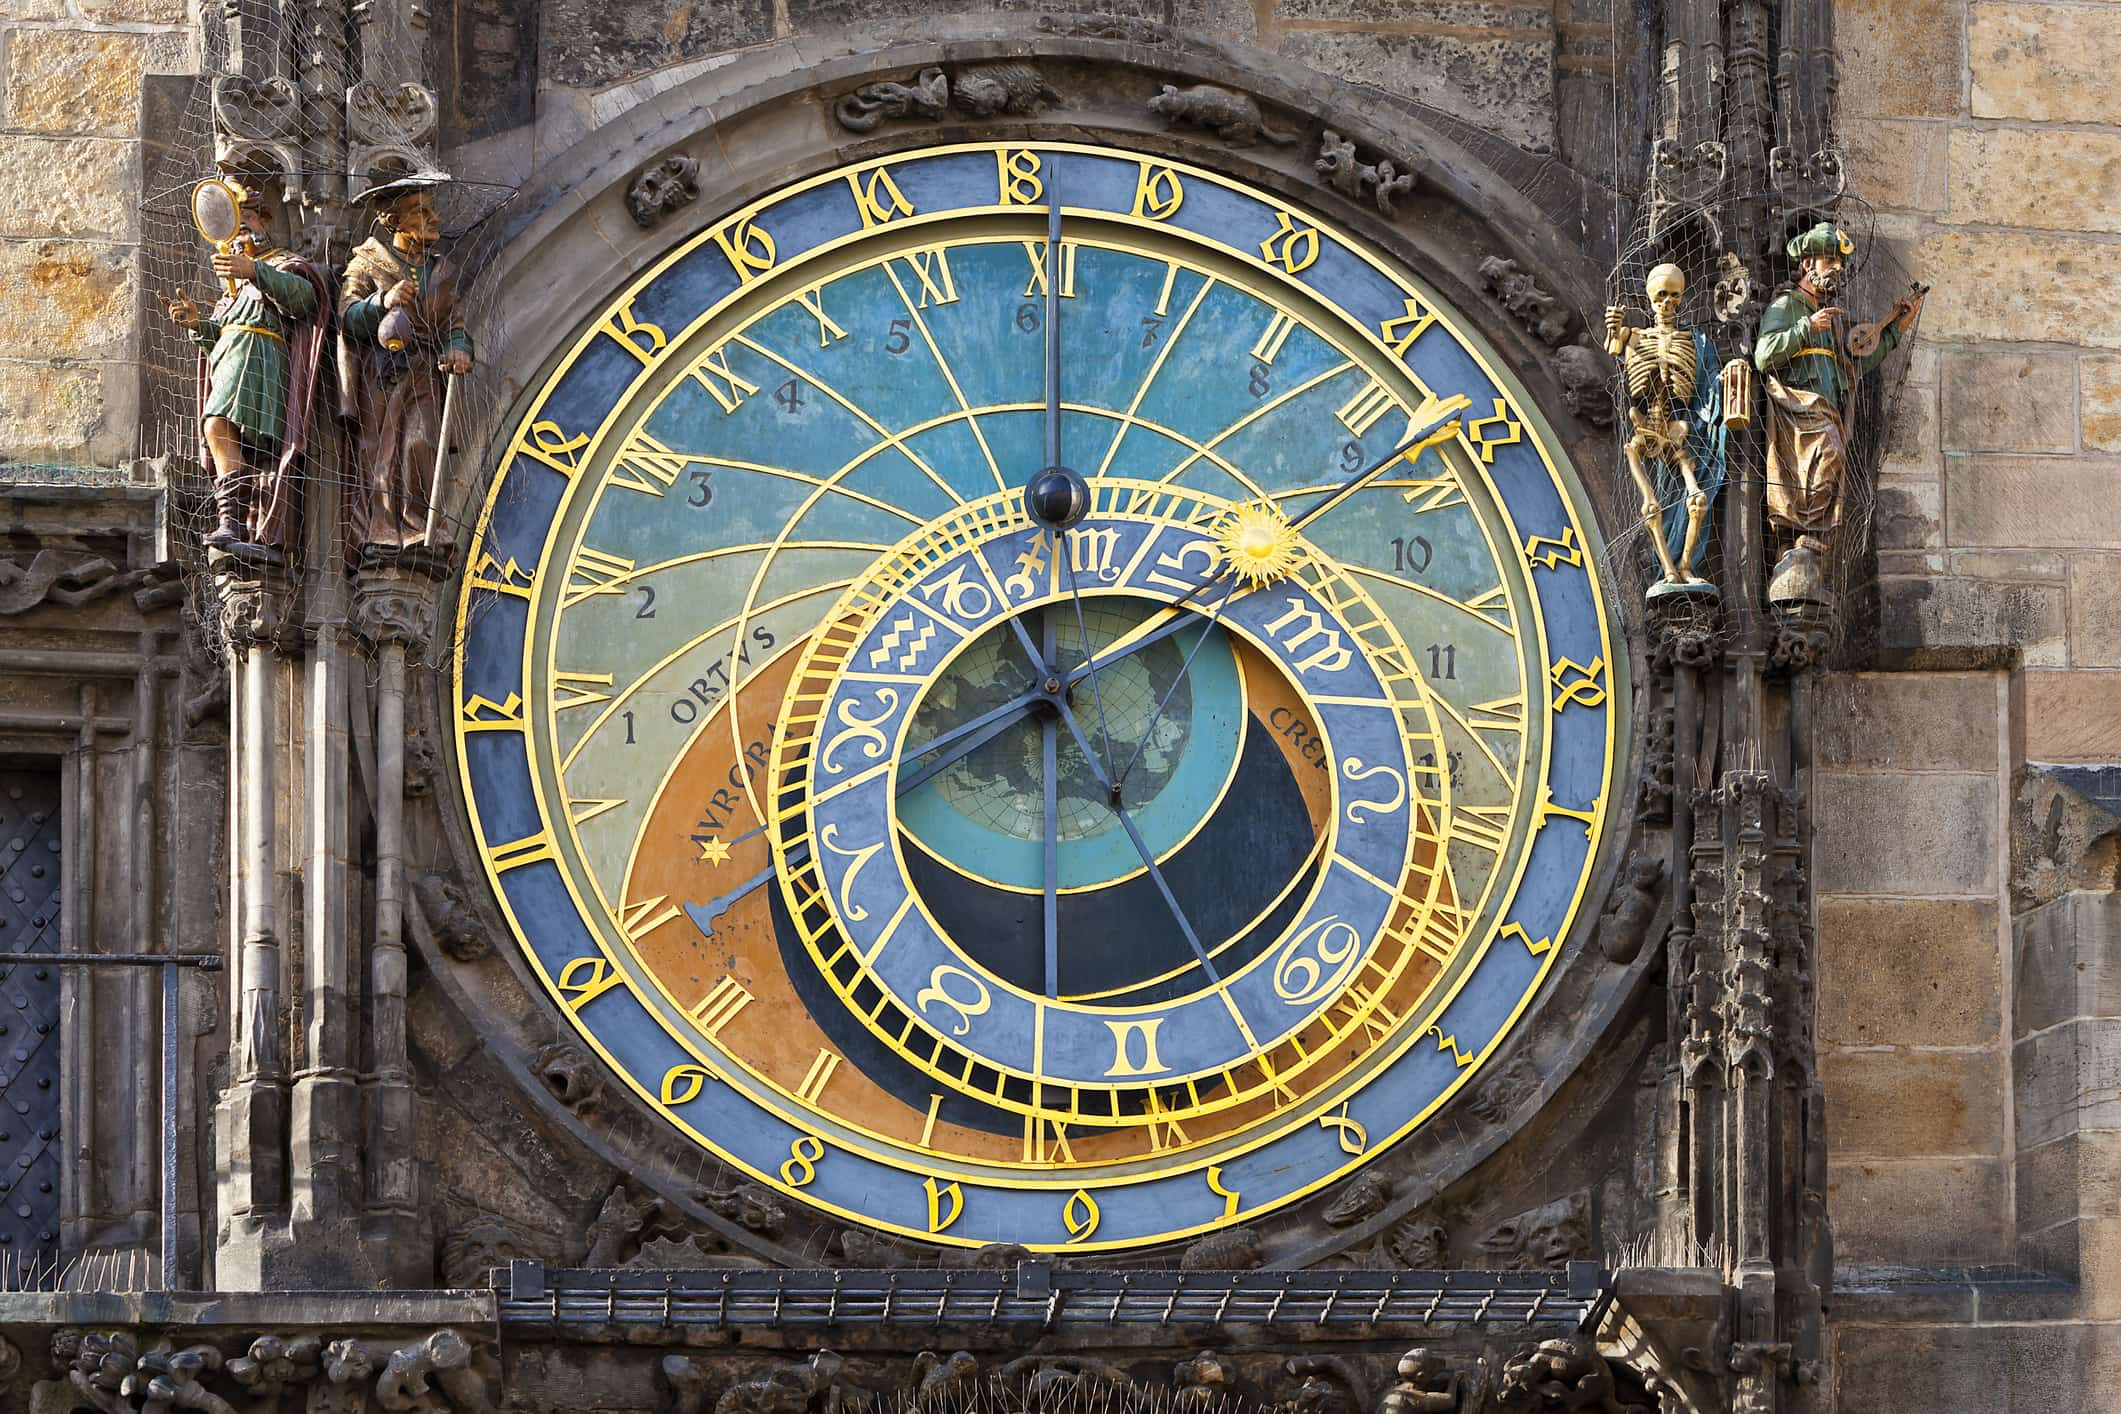 Prague's Astronomical Clock is the Most Beautiful in Europe, Says DW